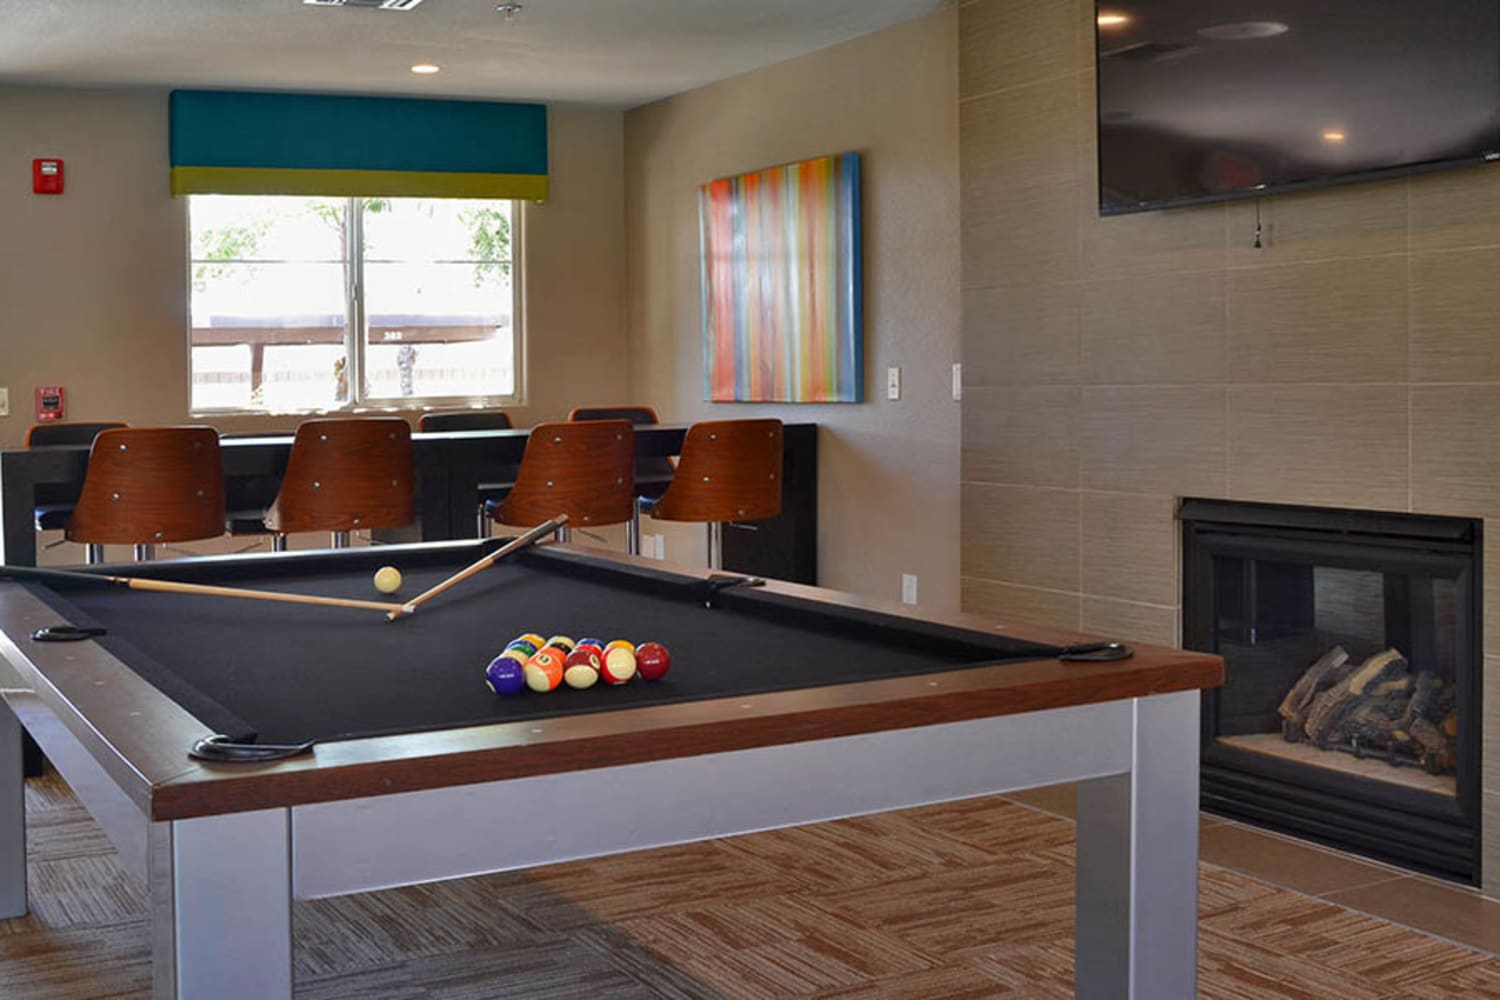 Pool table at 2150 Arizona Ave South in Chandler, Arizona